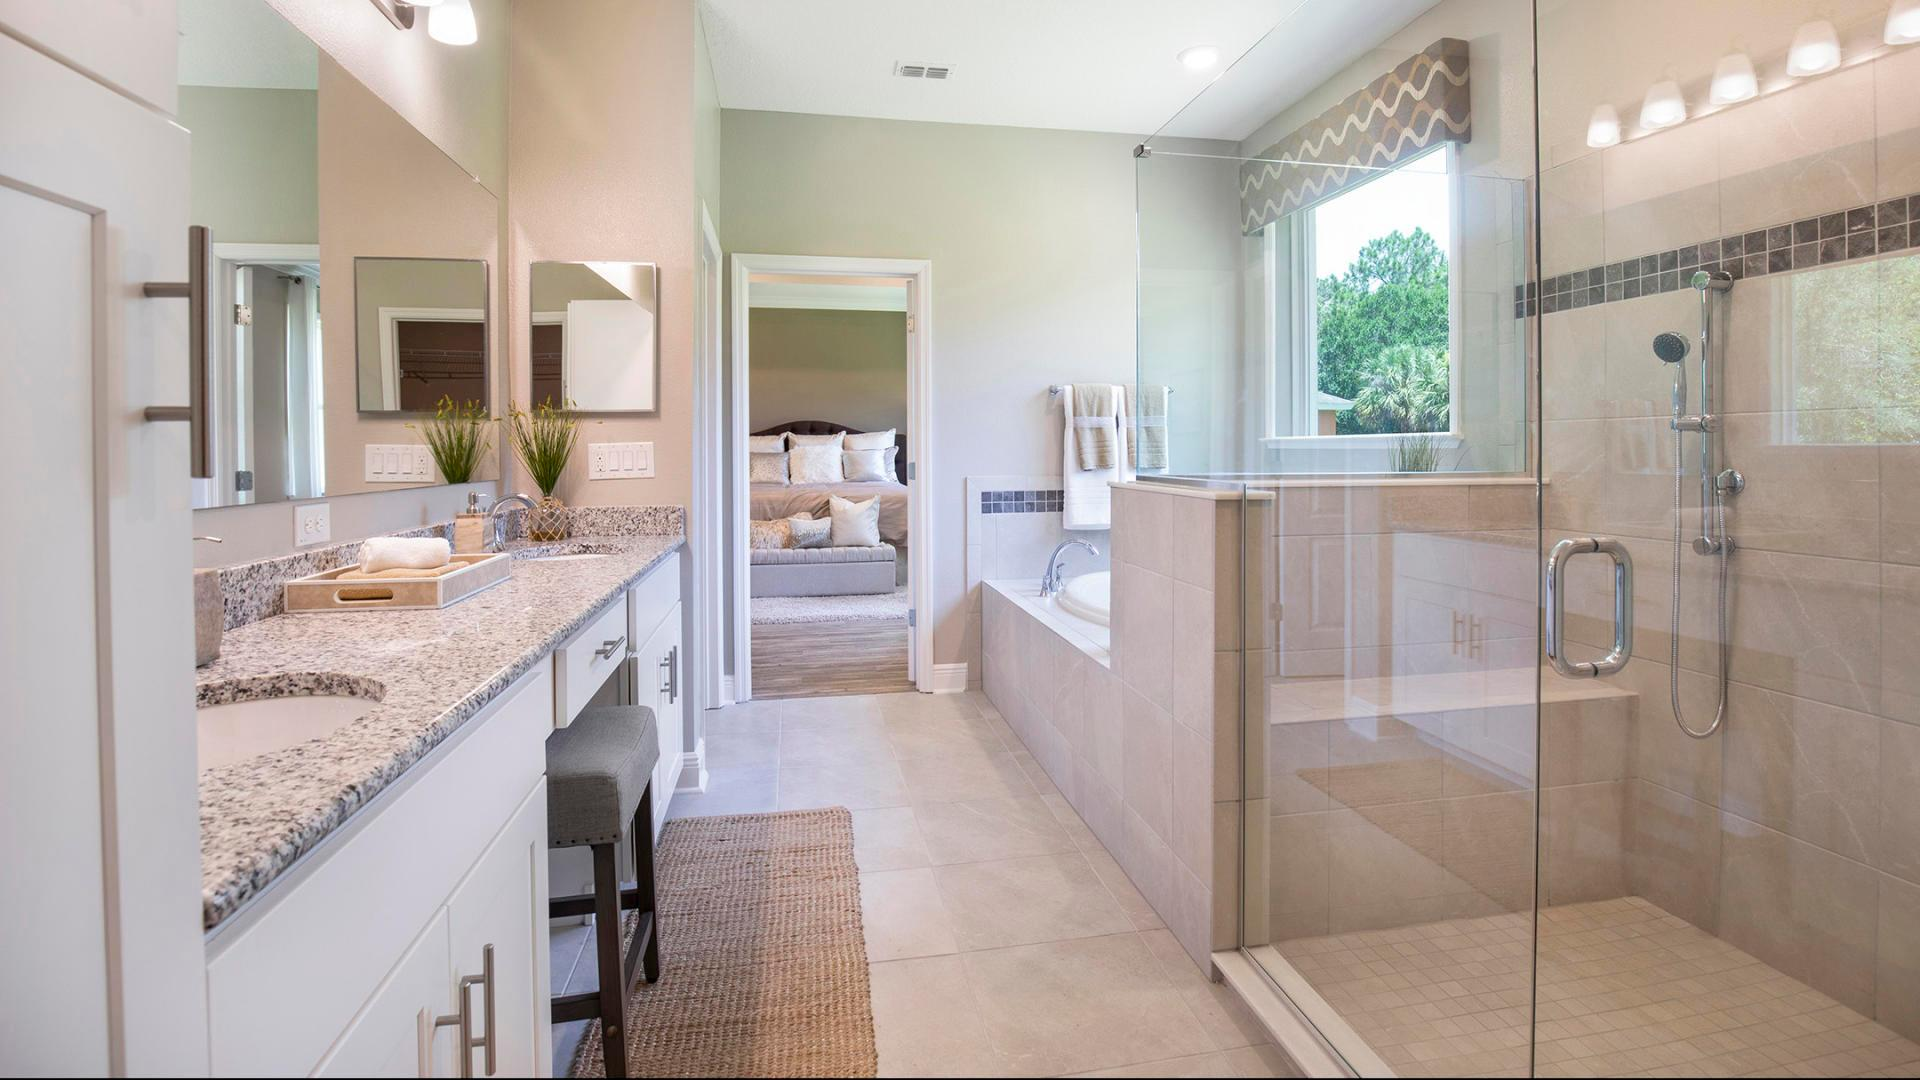 Bathroom featured in the Sienna By Maronda Homes in Melbourne, FL